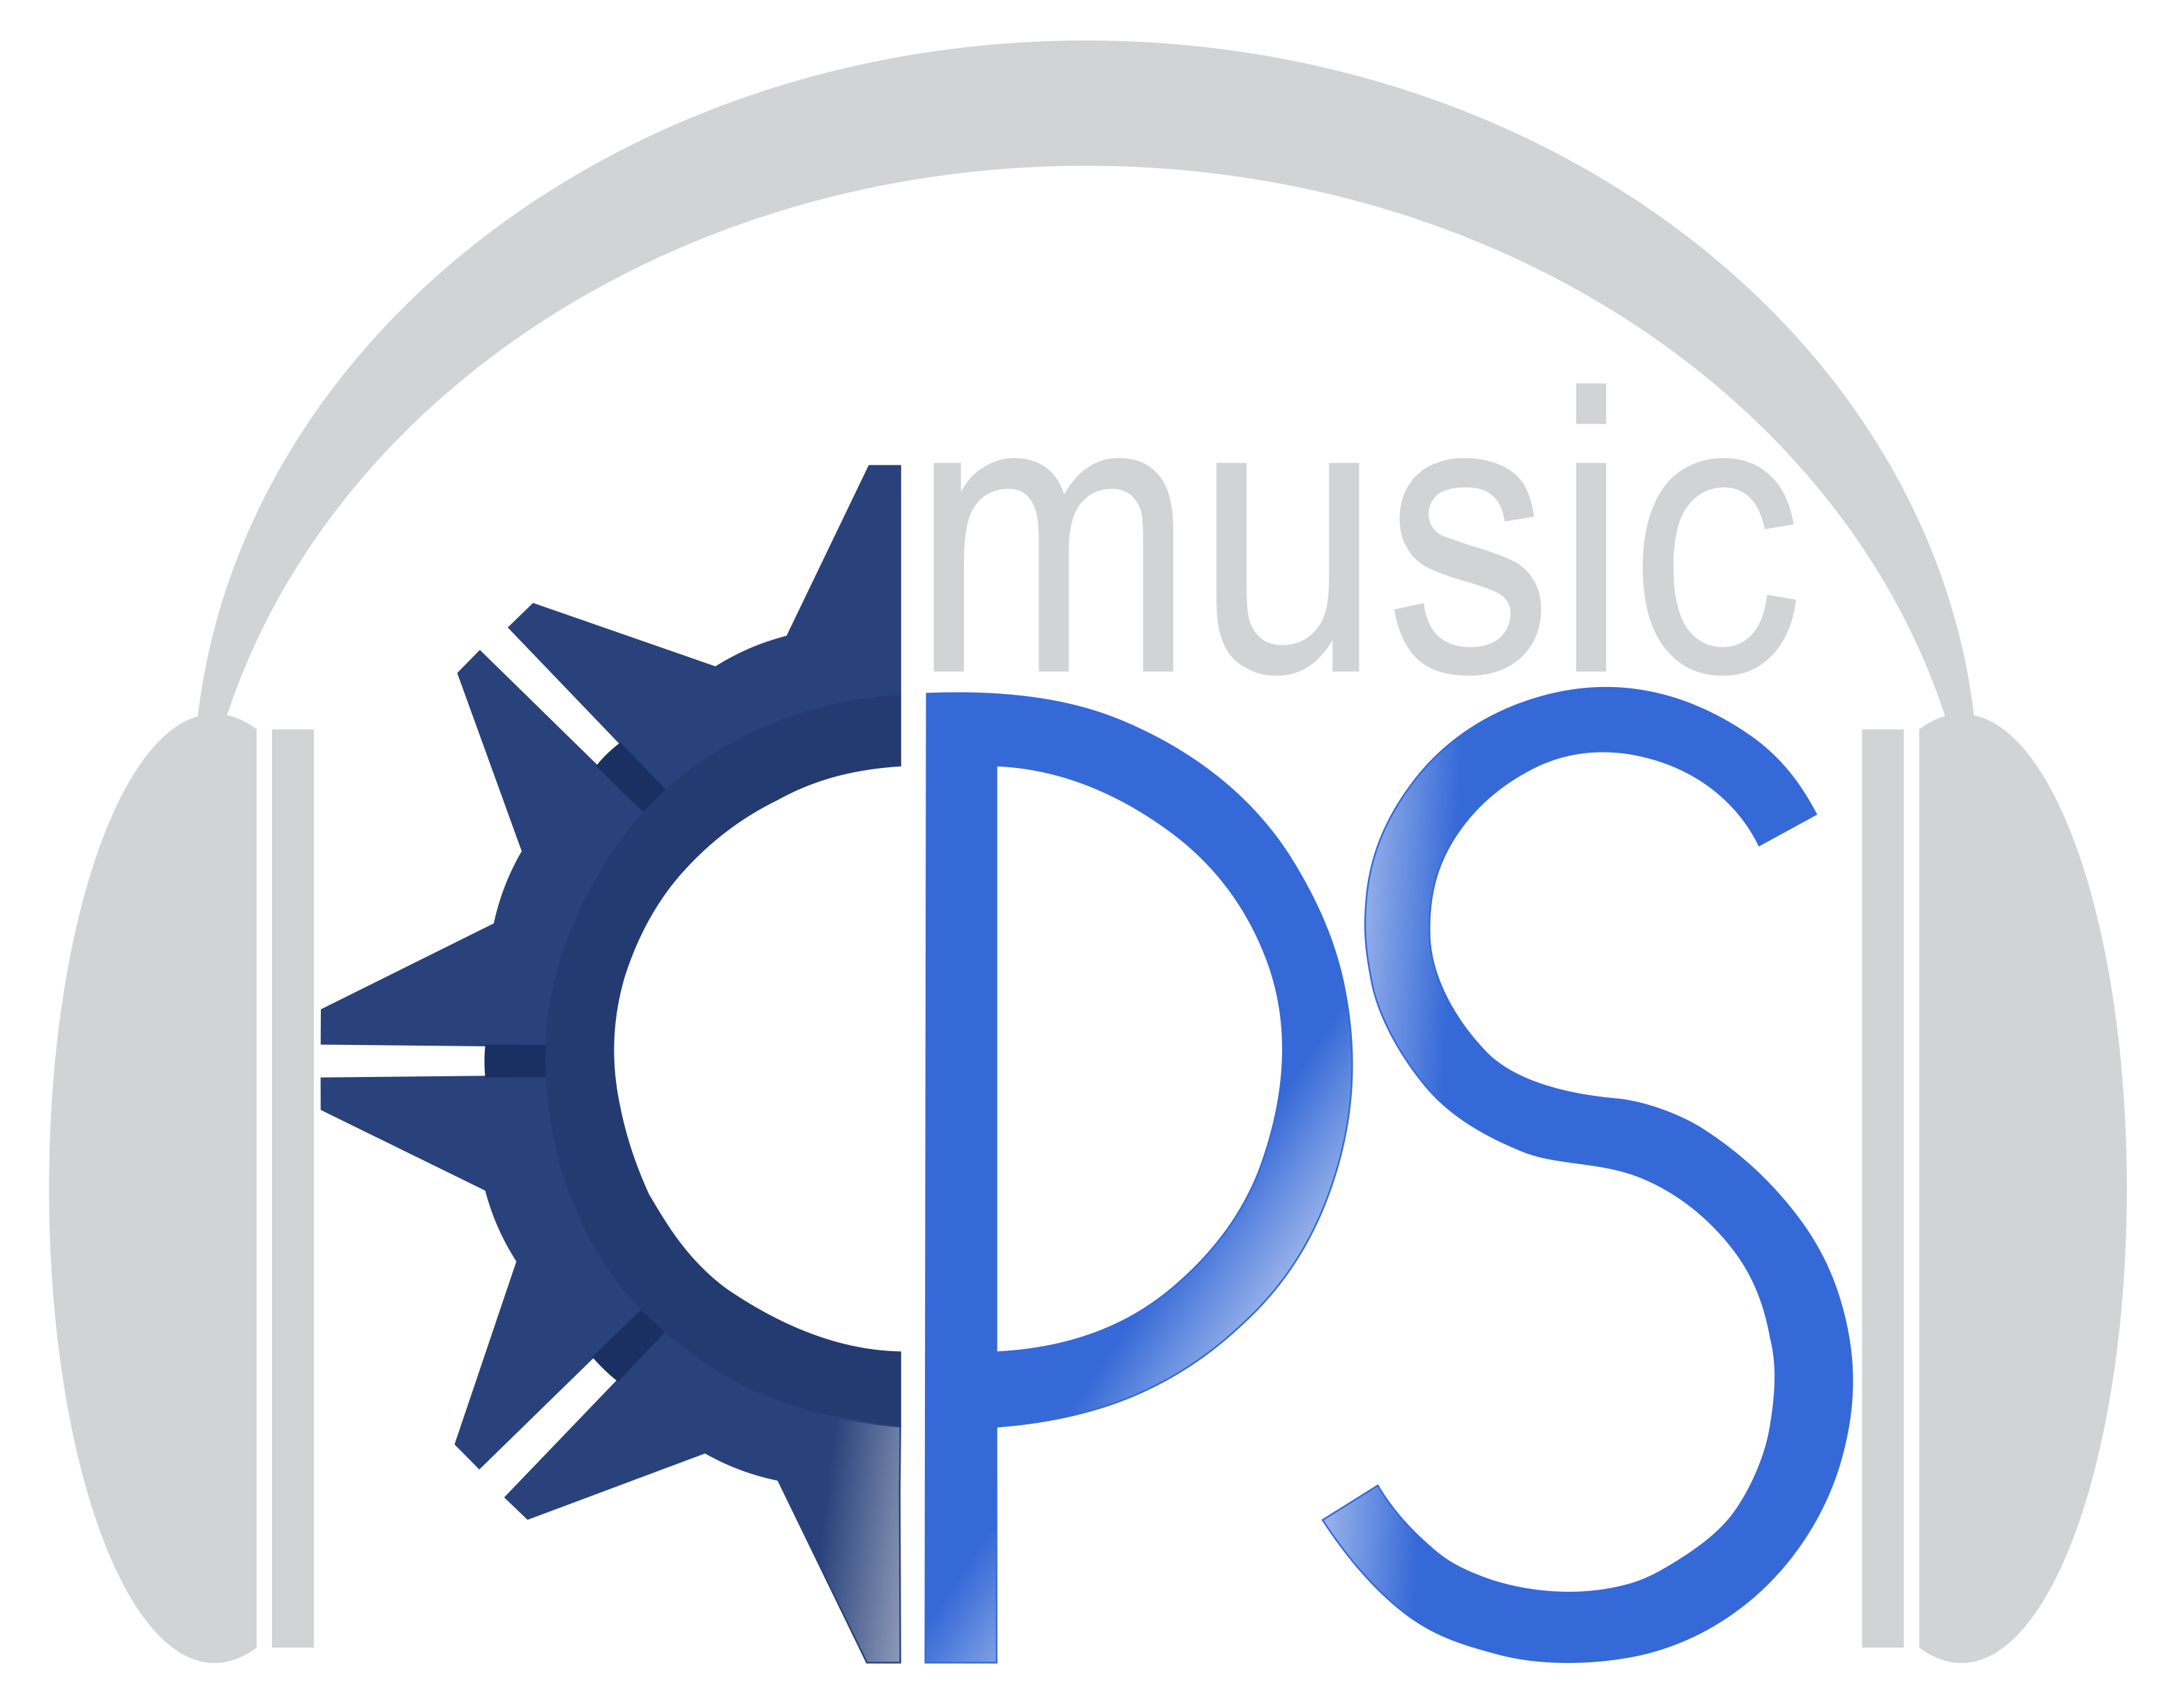 PS Music